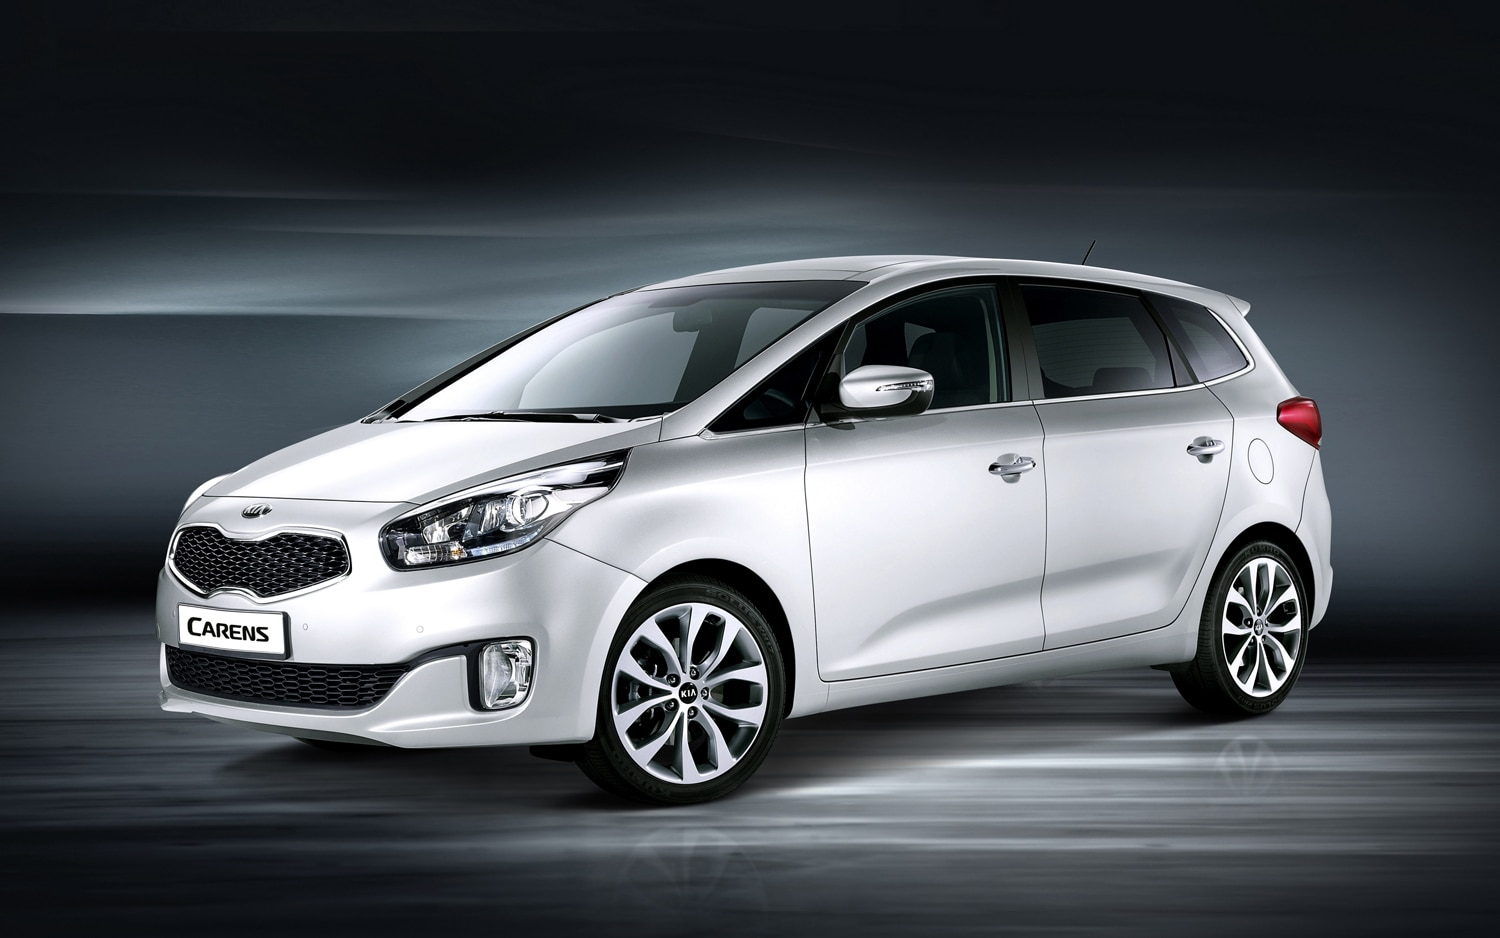 2013 Kia Carens Front Three Quarter1